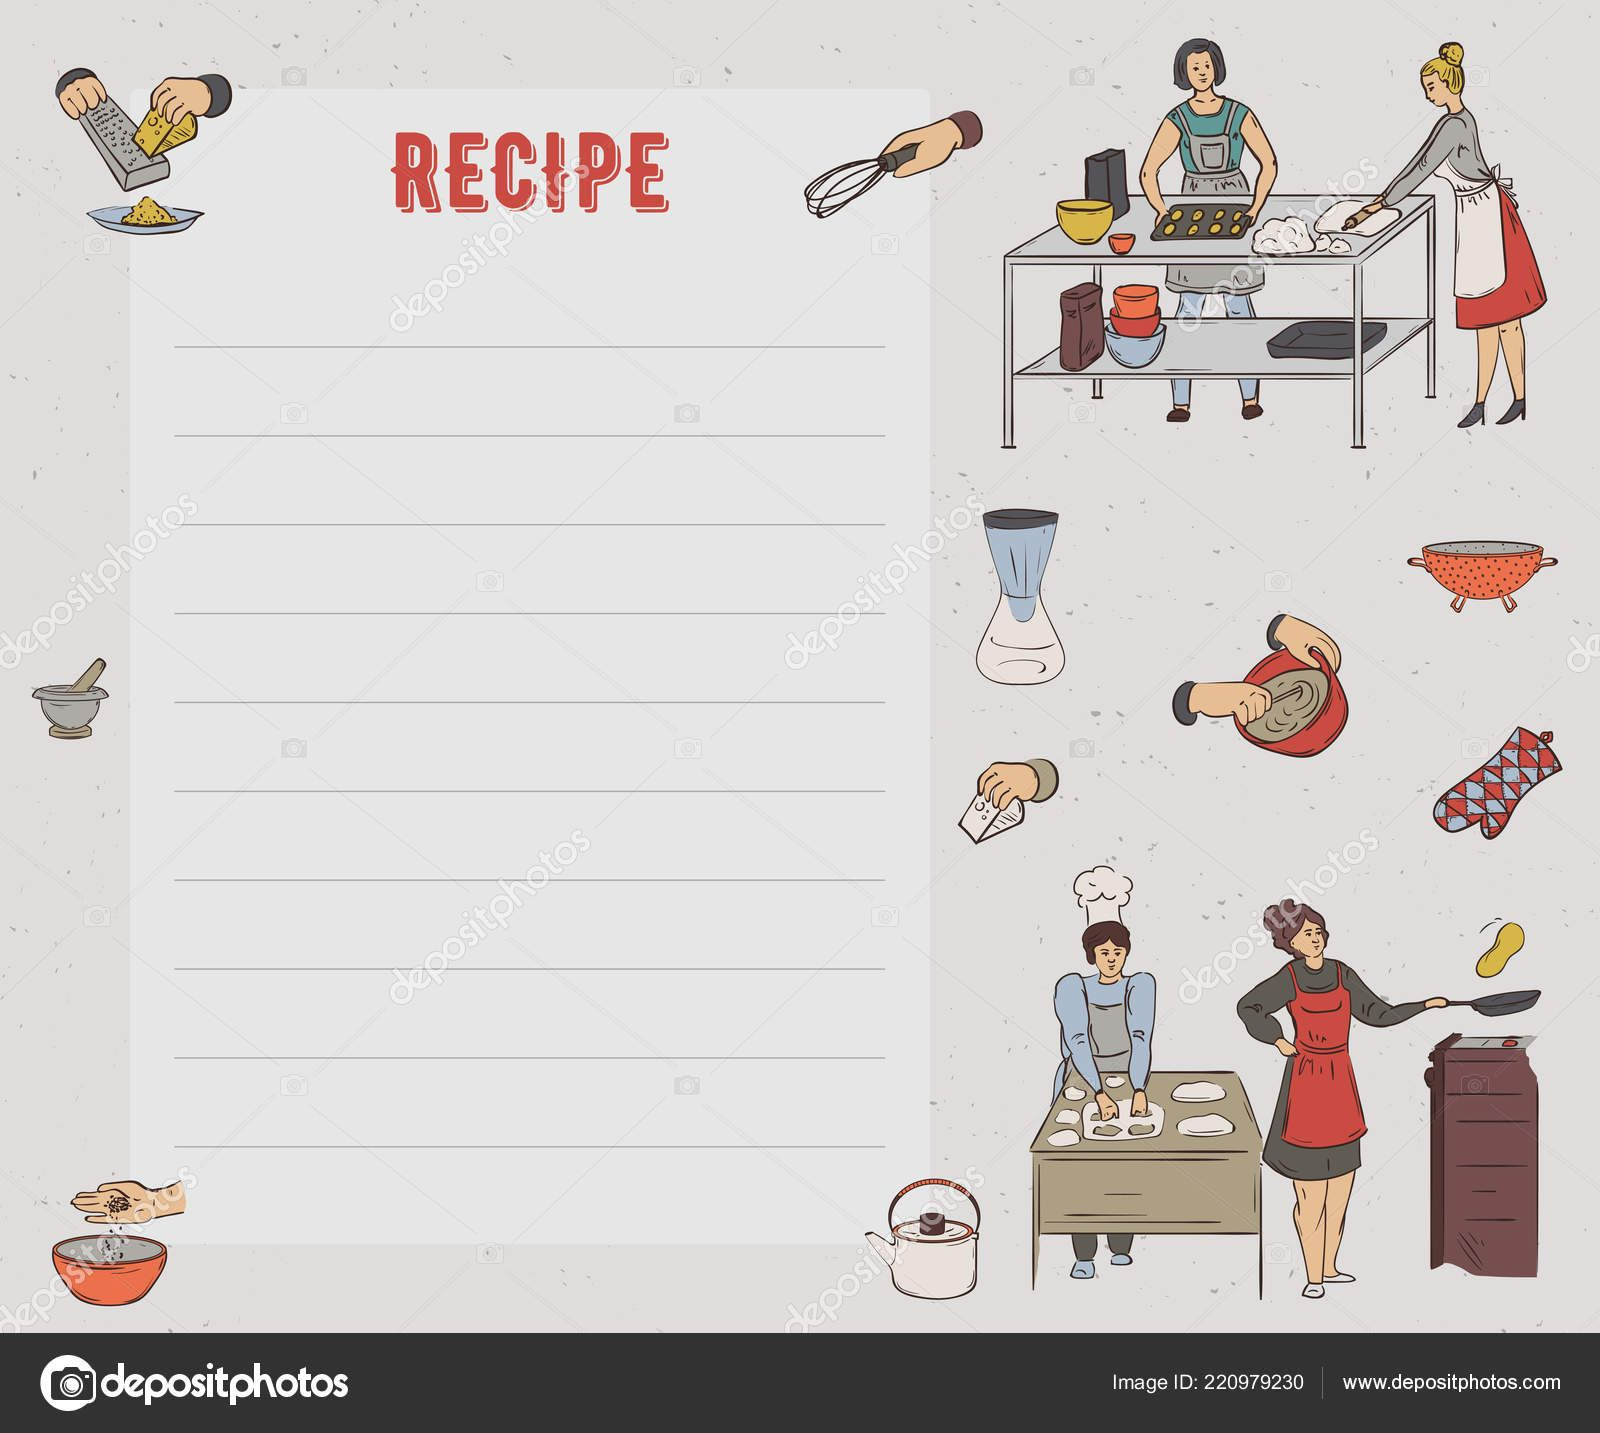 Recipe Card Cookbook Page Design Template People Preparing Throughout Restaurant Recipe Card Te Recipe Cards Template Loyalty Card Design Create Business Cards